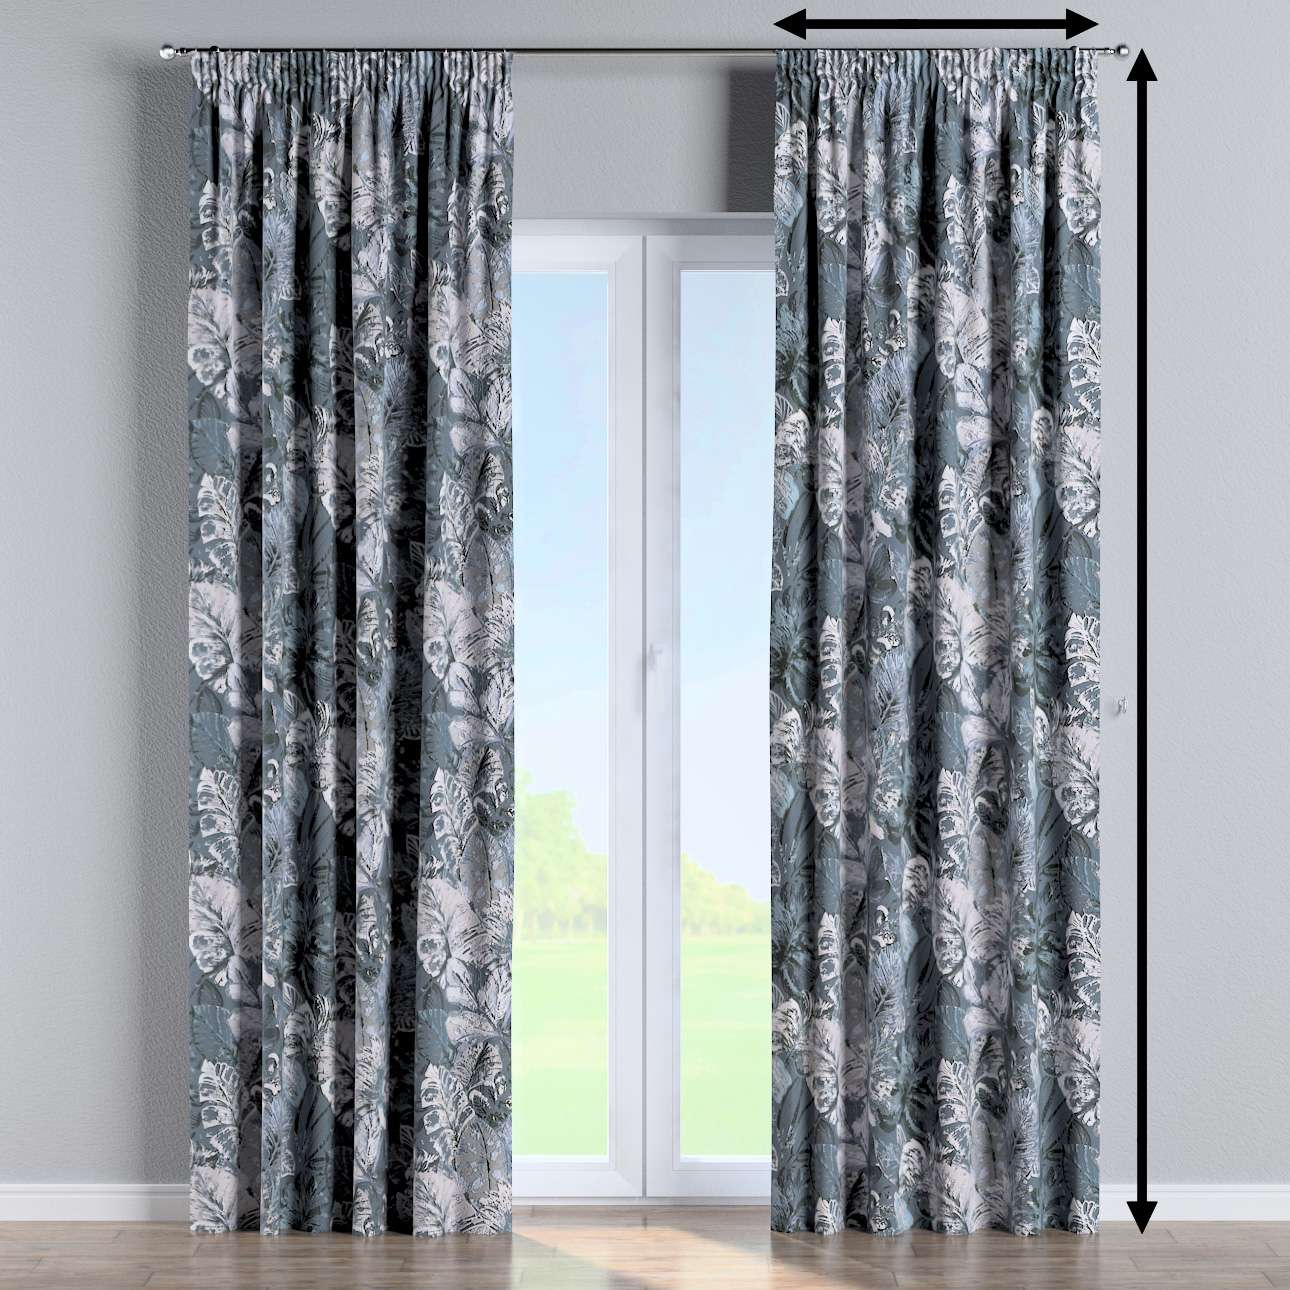 Pencil pleat curtains in collection Abigail, fabric: 143-18